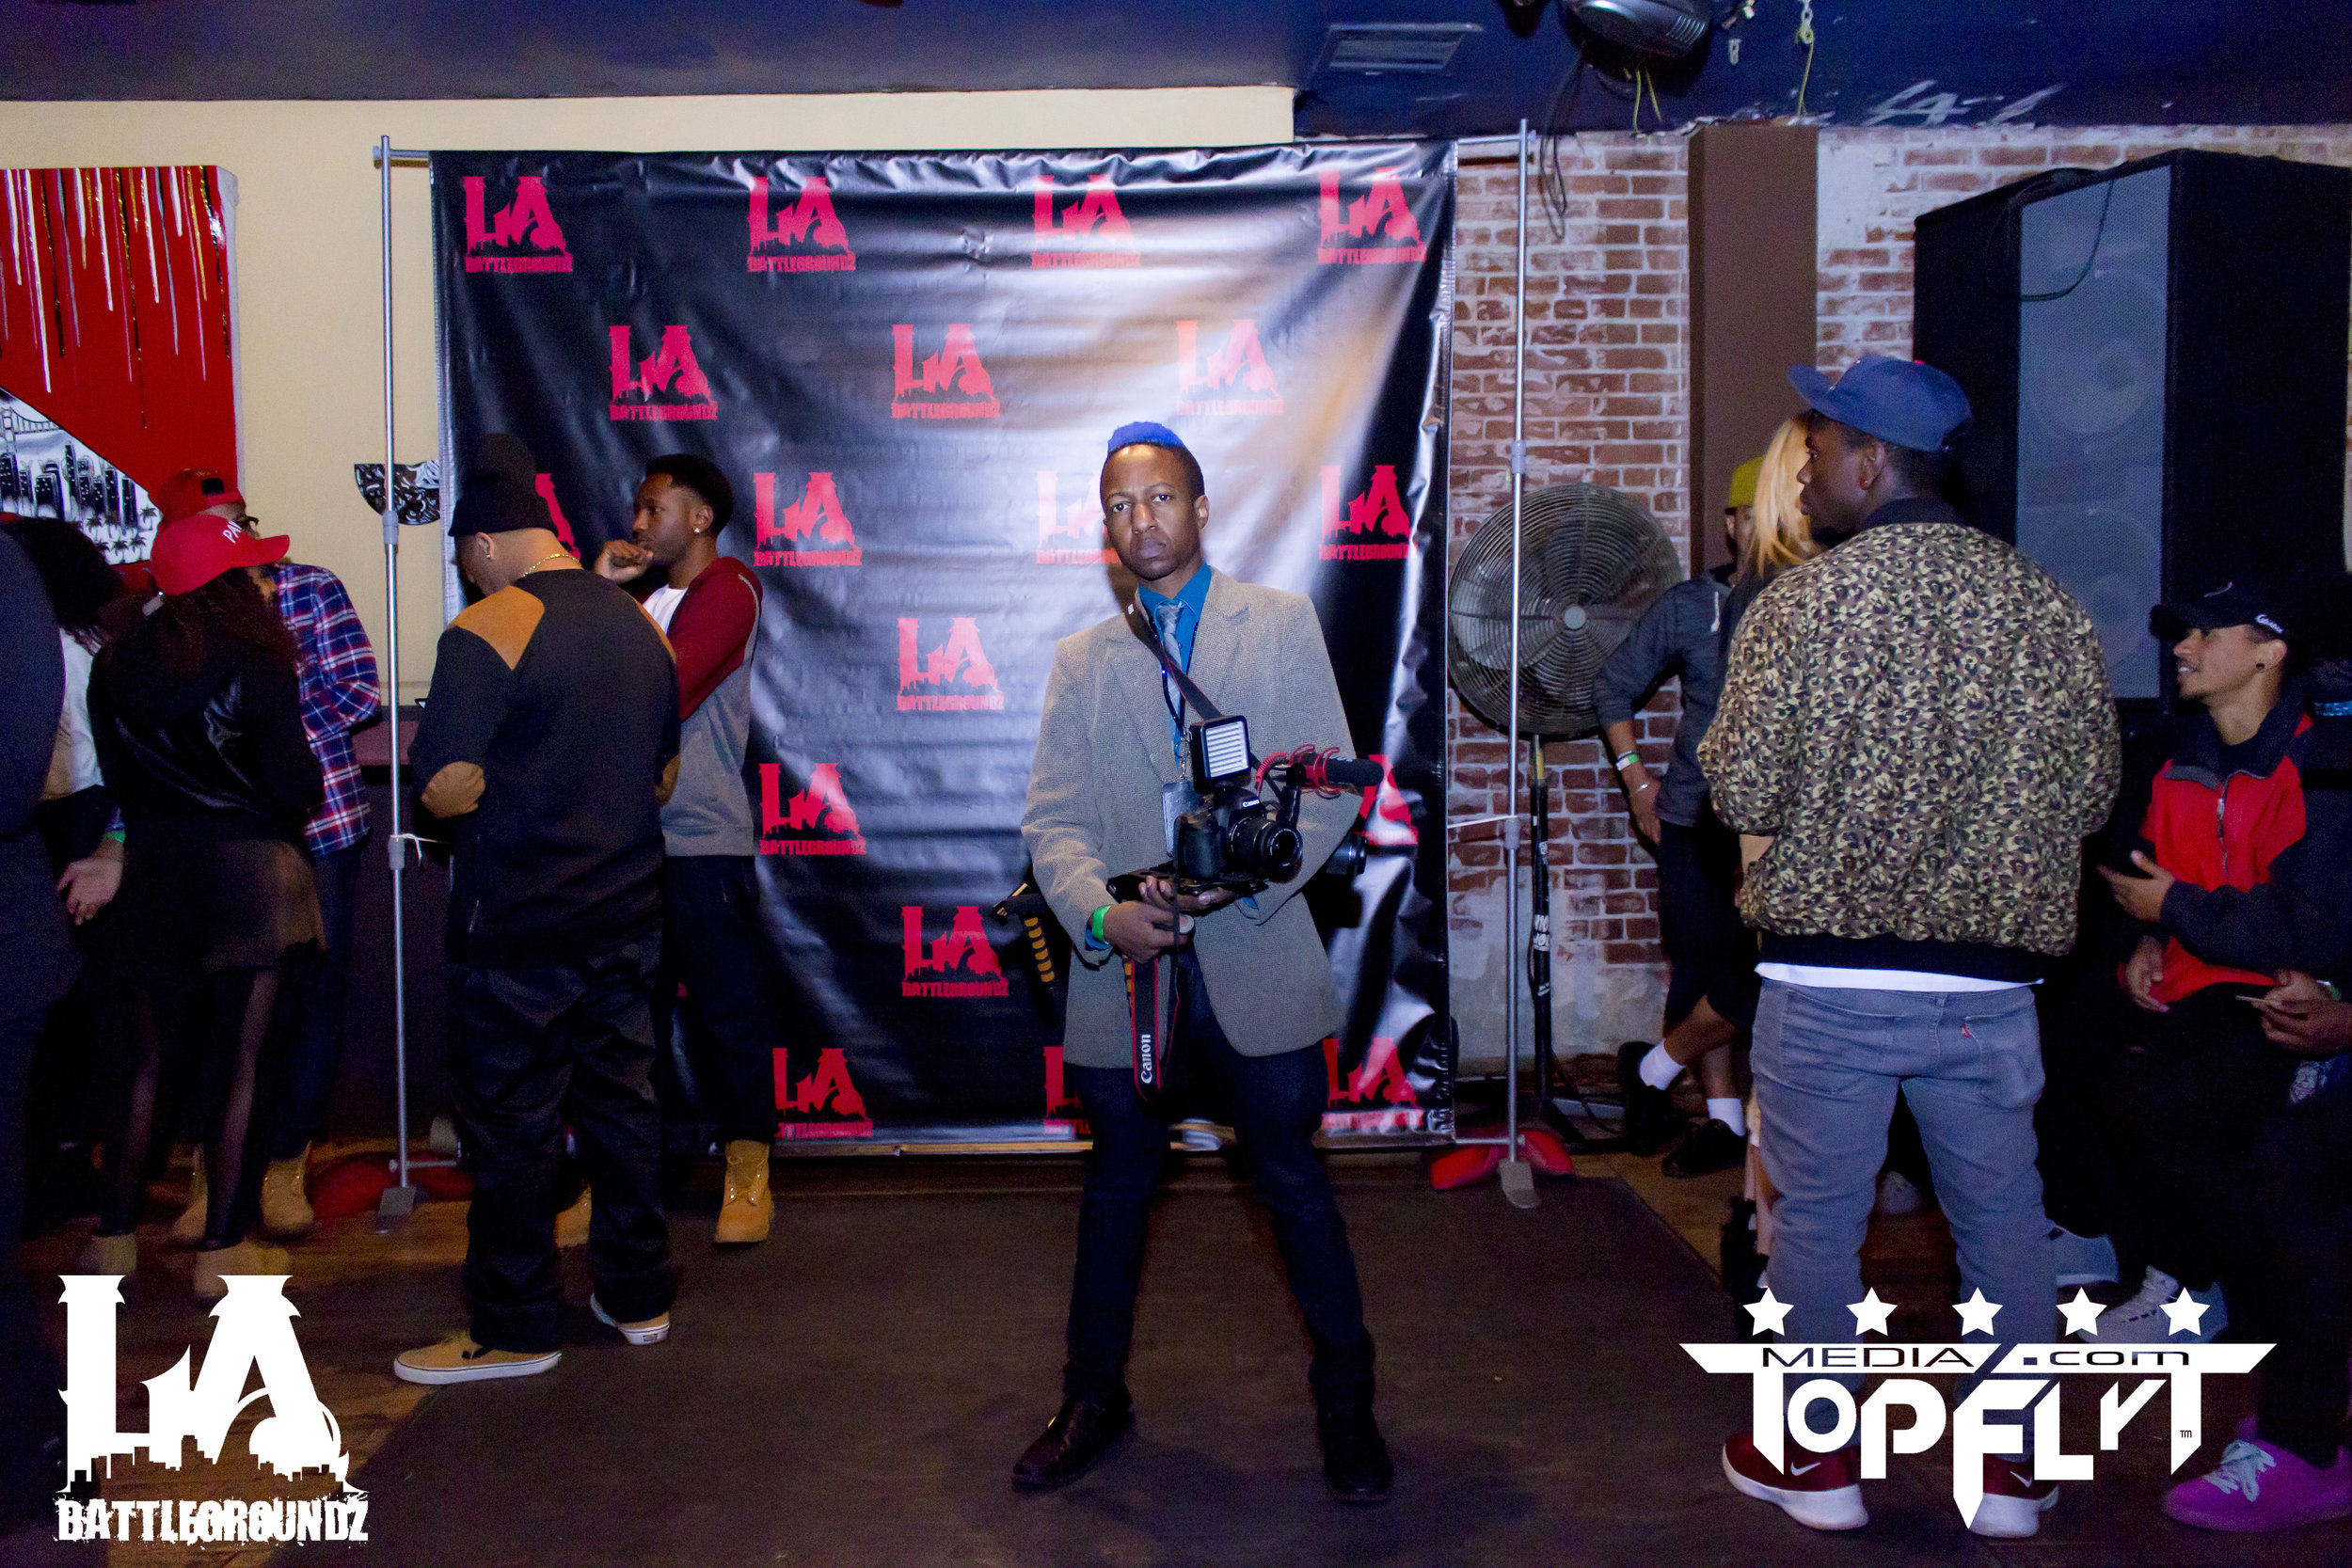 LA Battlegroundz - Decembarfest - The Christening_27.jpg